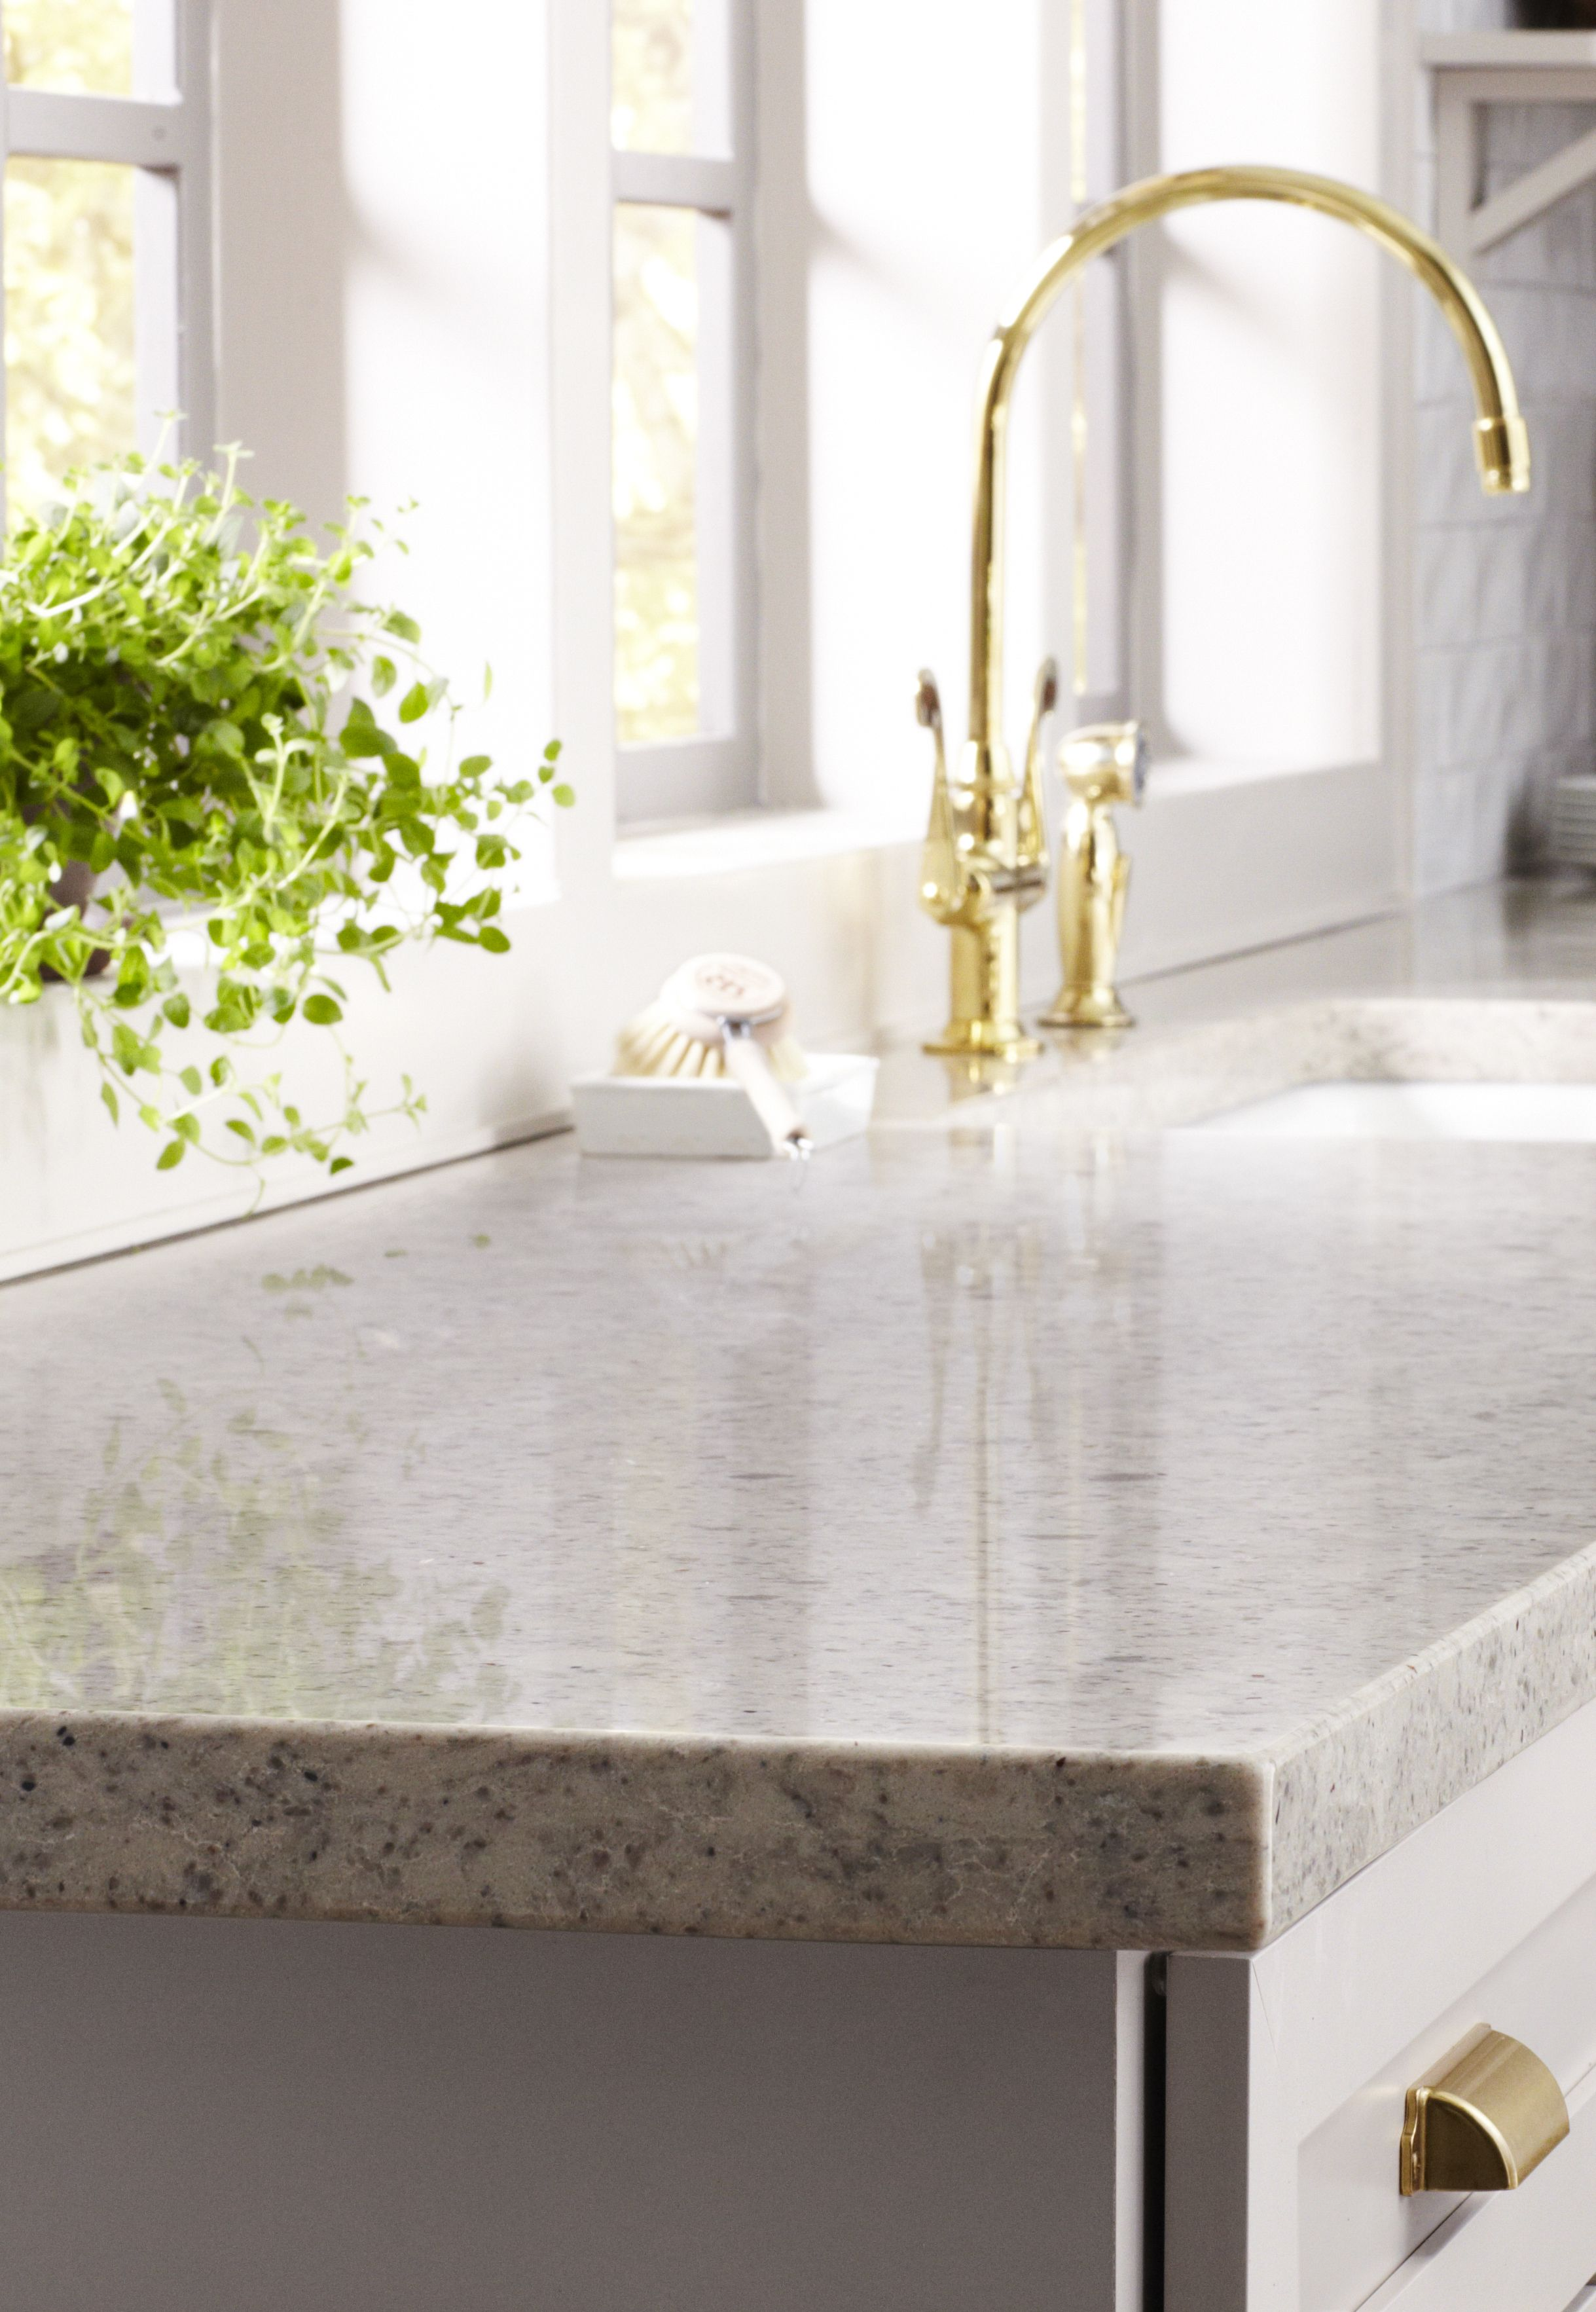 Did You Know Quartz Countertops Resist Spills Stains From Items Like Juice Wine Martha Stewart Living Kitchen Martha Stewart Living Martha Stewart Kitchen